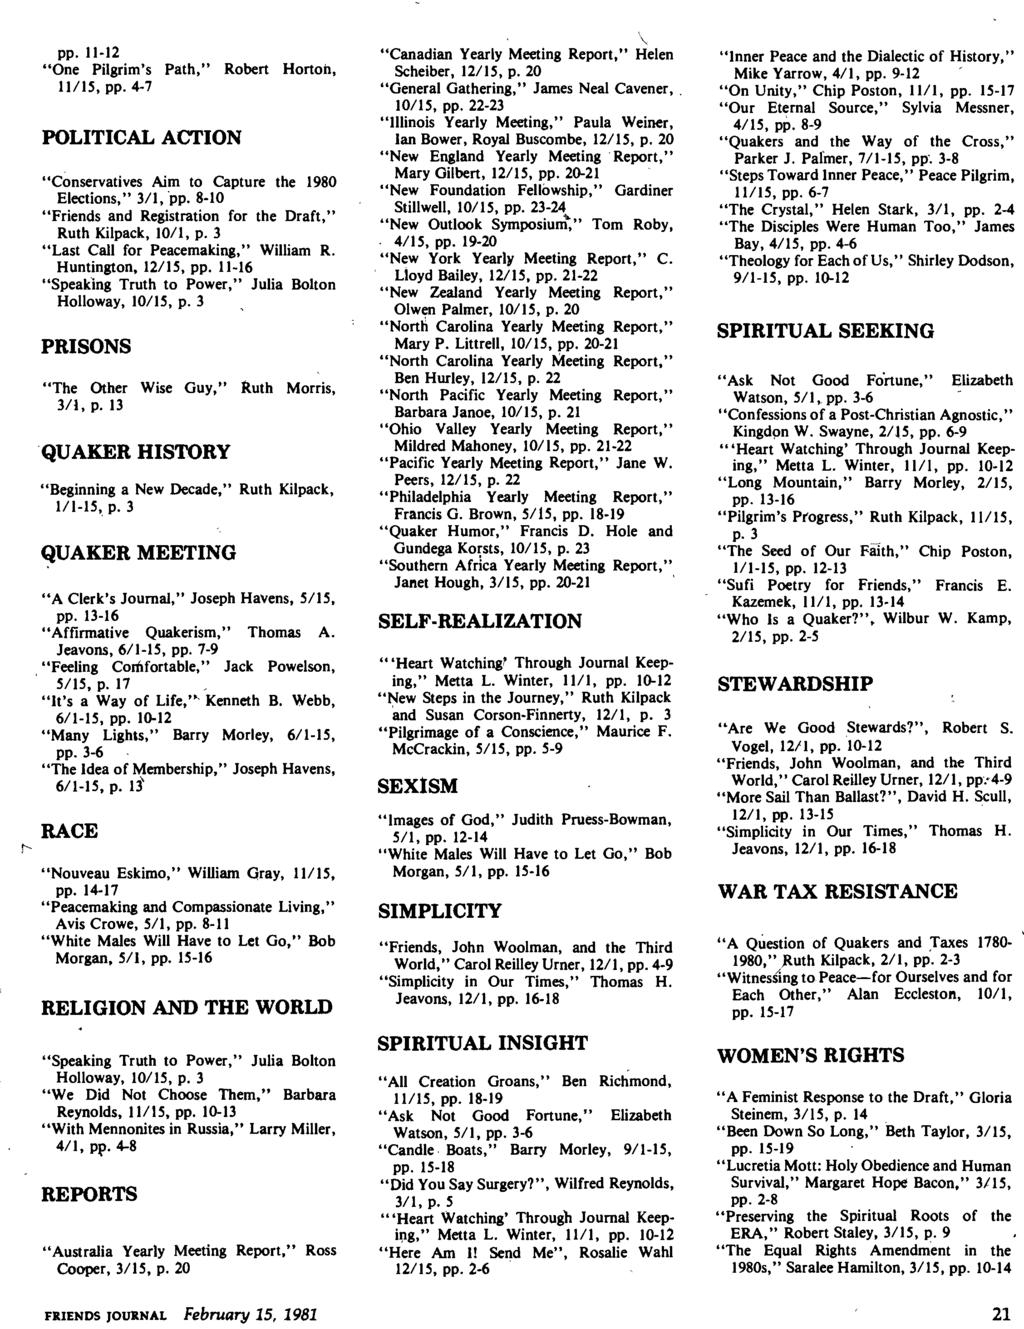 Friends Journal 1955 Index To Volume 1. Weekly Issues From regarding This Week's Torah Portion 10/15/19